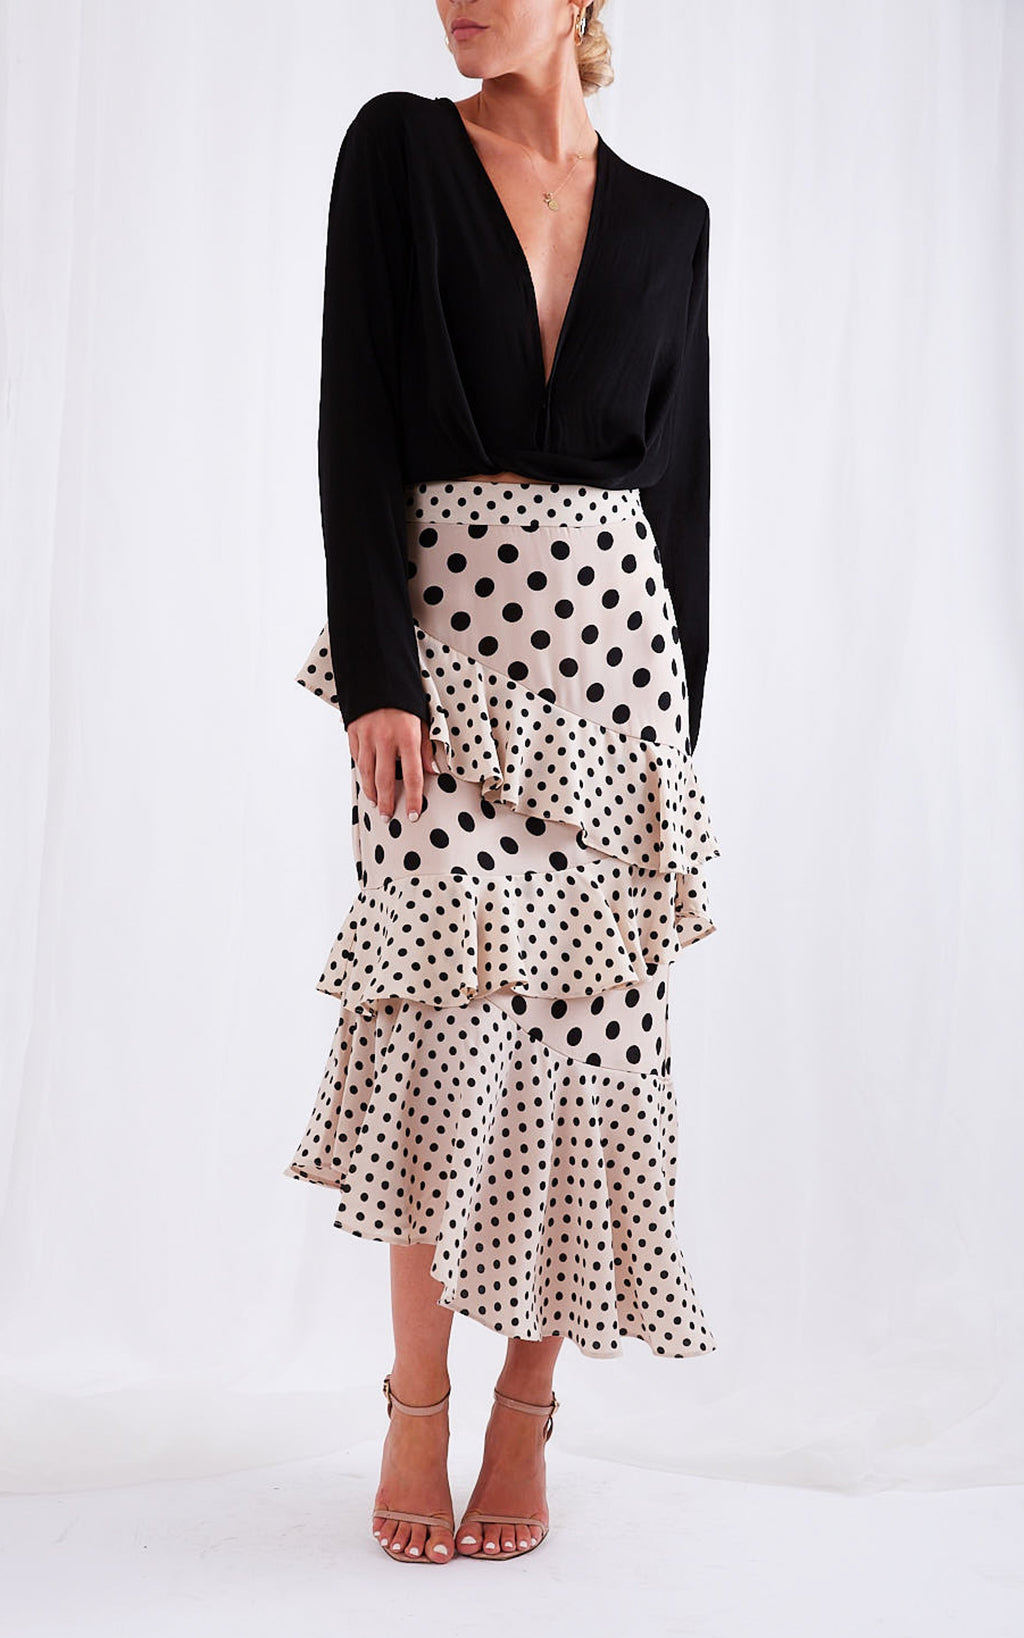 ASHTON ruffle midi skirt - mixed polka dot print